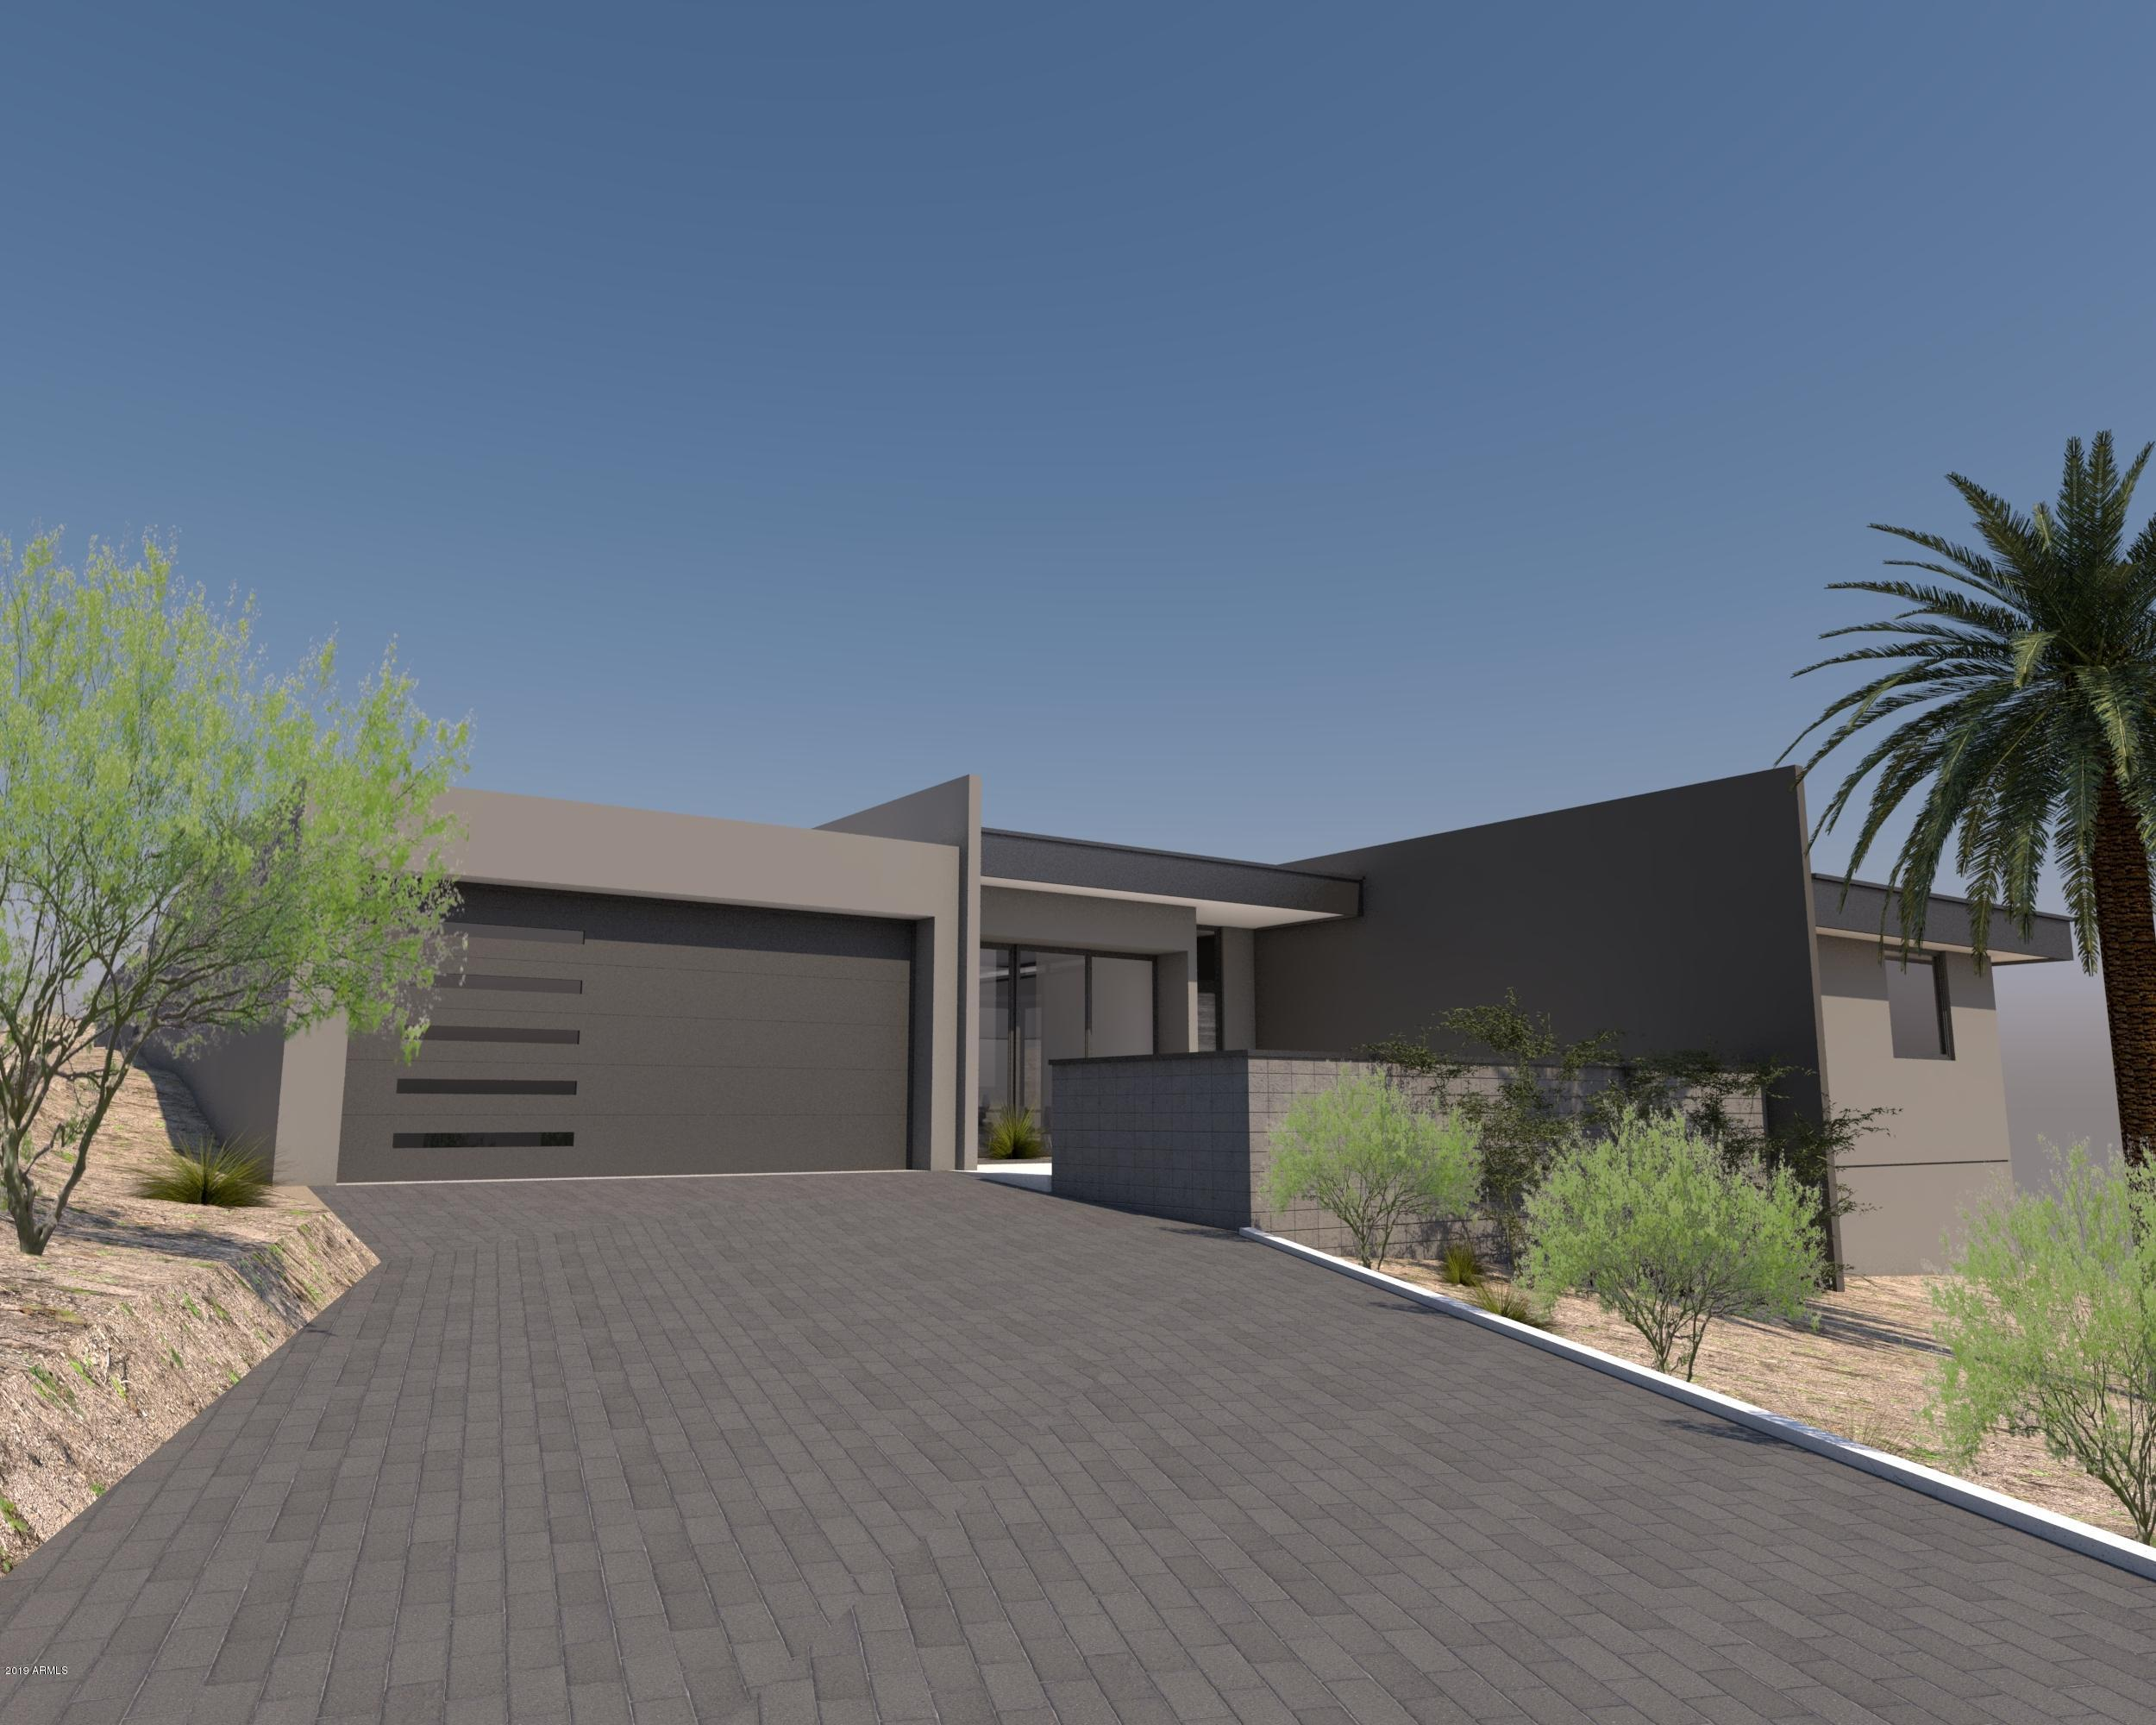 12809 N 17TH Place, Phoenix AZ 85022